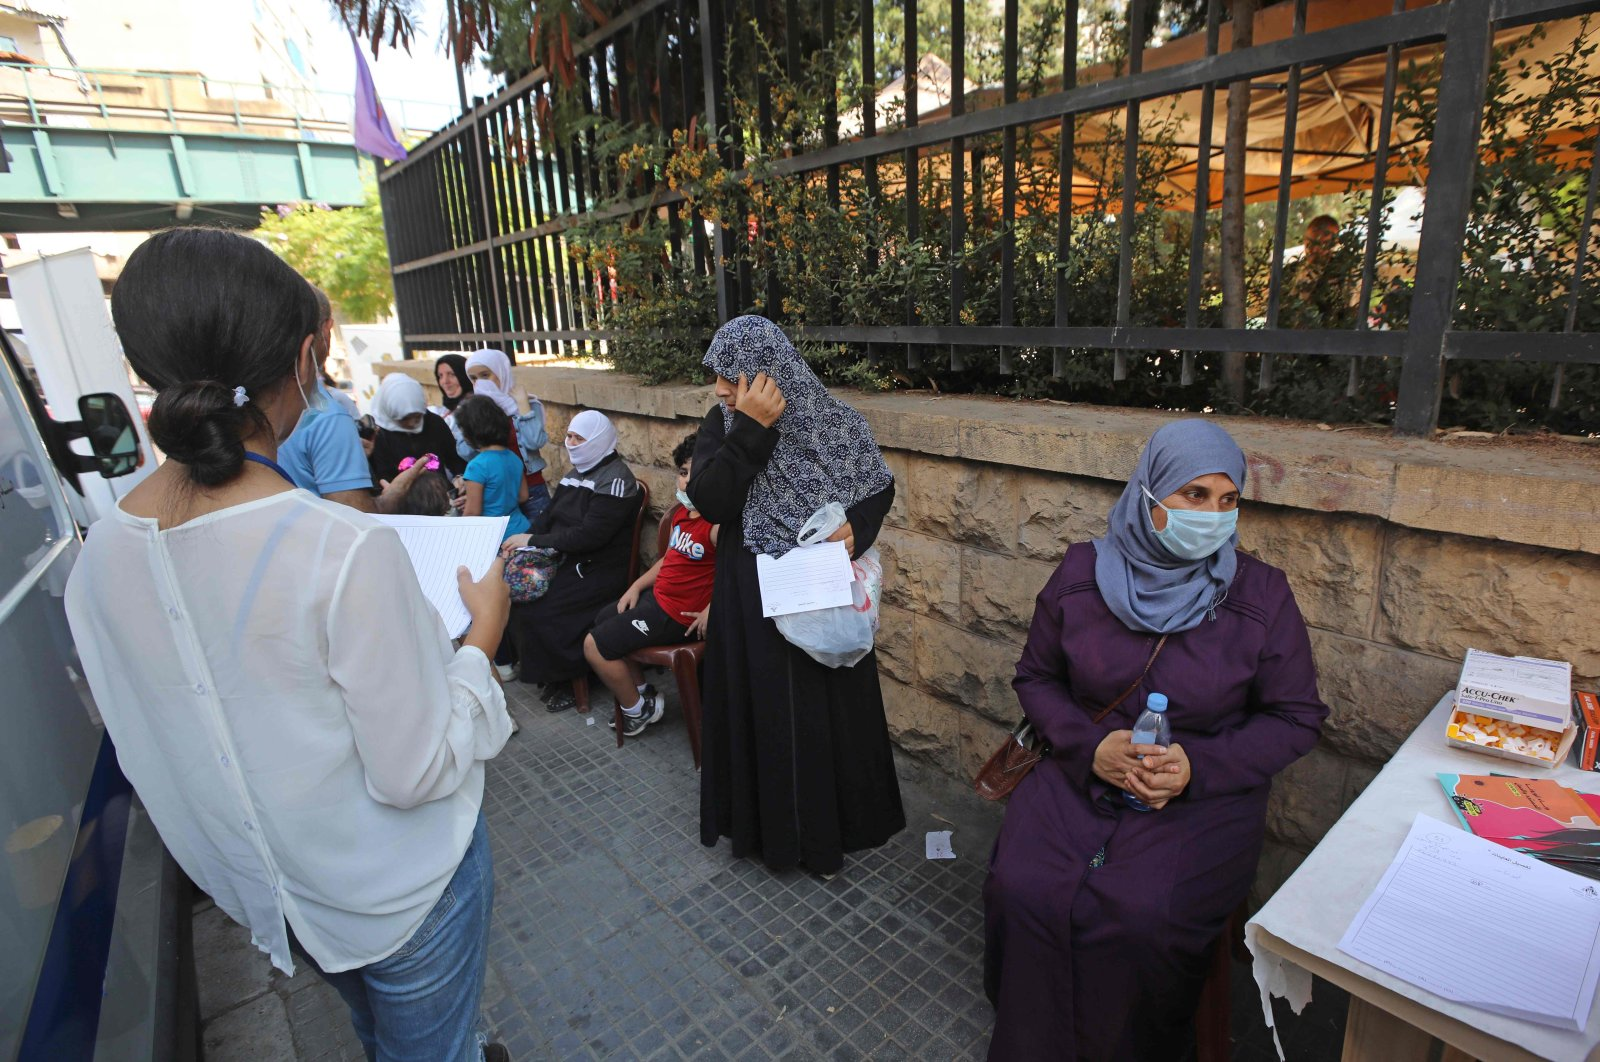 Women wait for their turn outside a mobile clinic supported by the United Nations Population Fund (UNFPA), offering free ultrasounds and tests before referring women to other health centers, in Beirut's Basta neighborhood, Lebanon, Sept. 18, 2020. (AFP Photo)